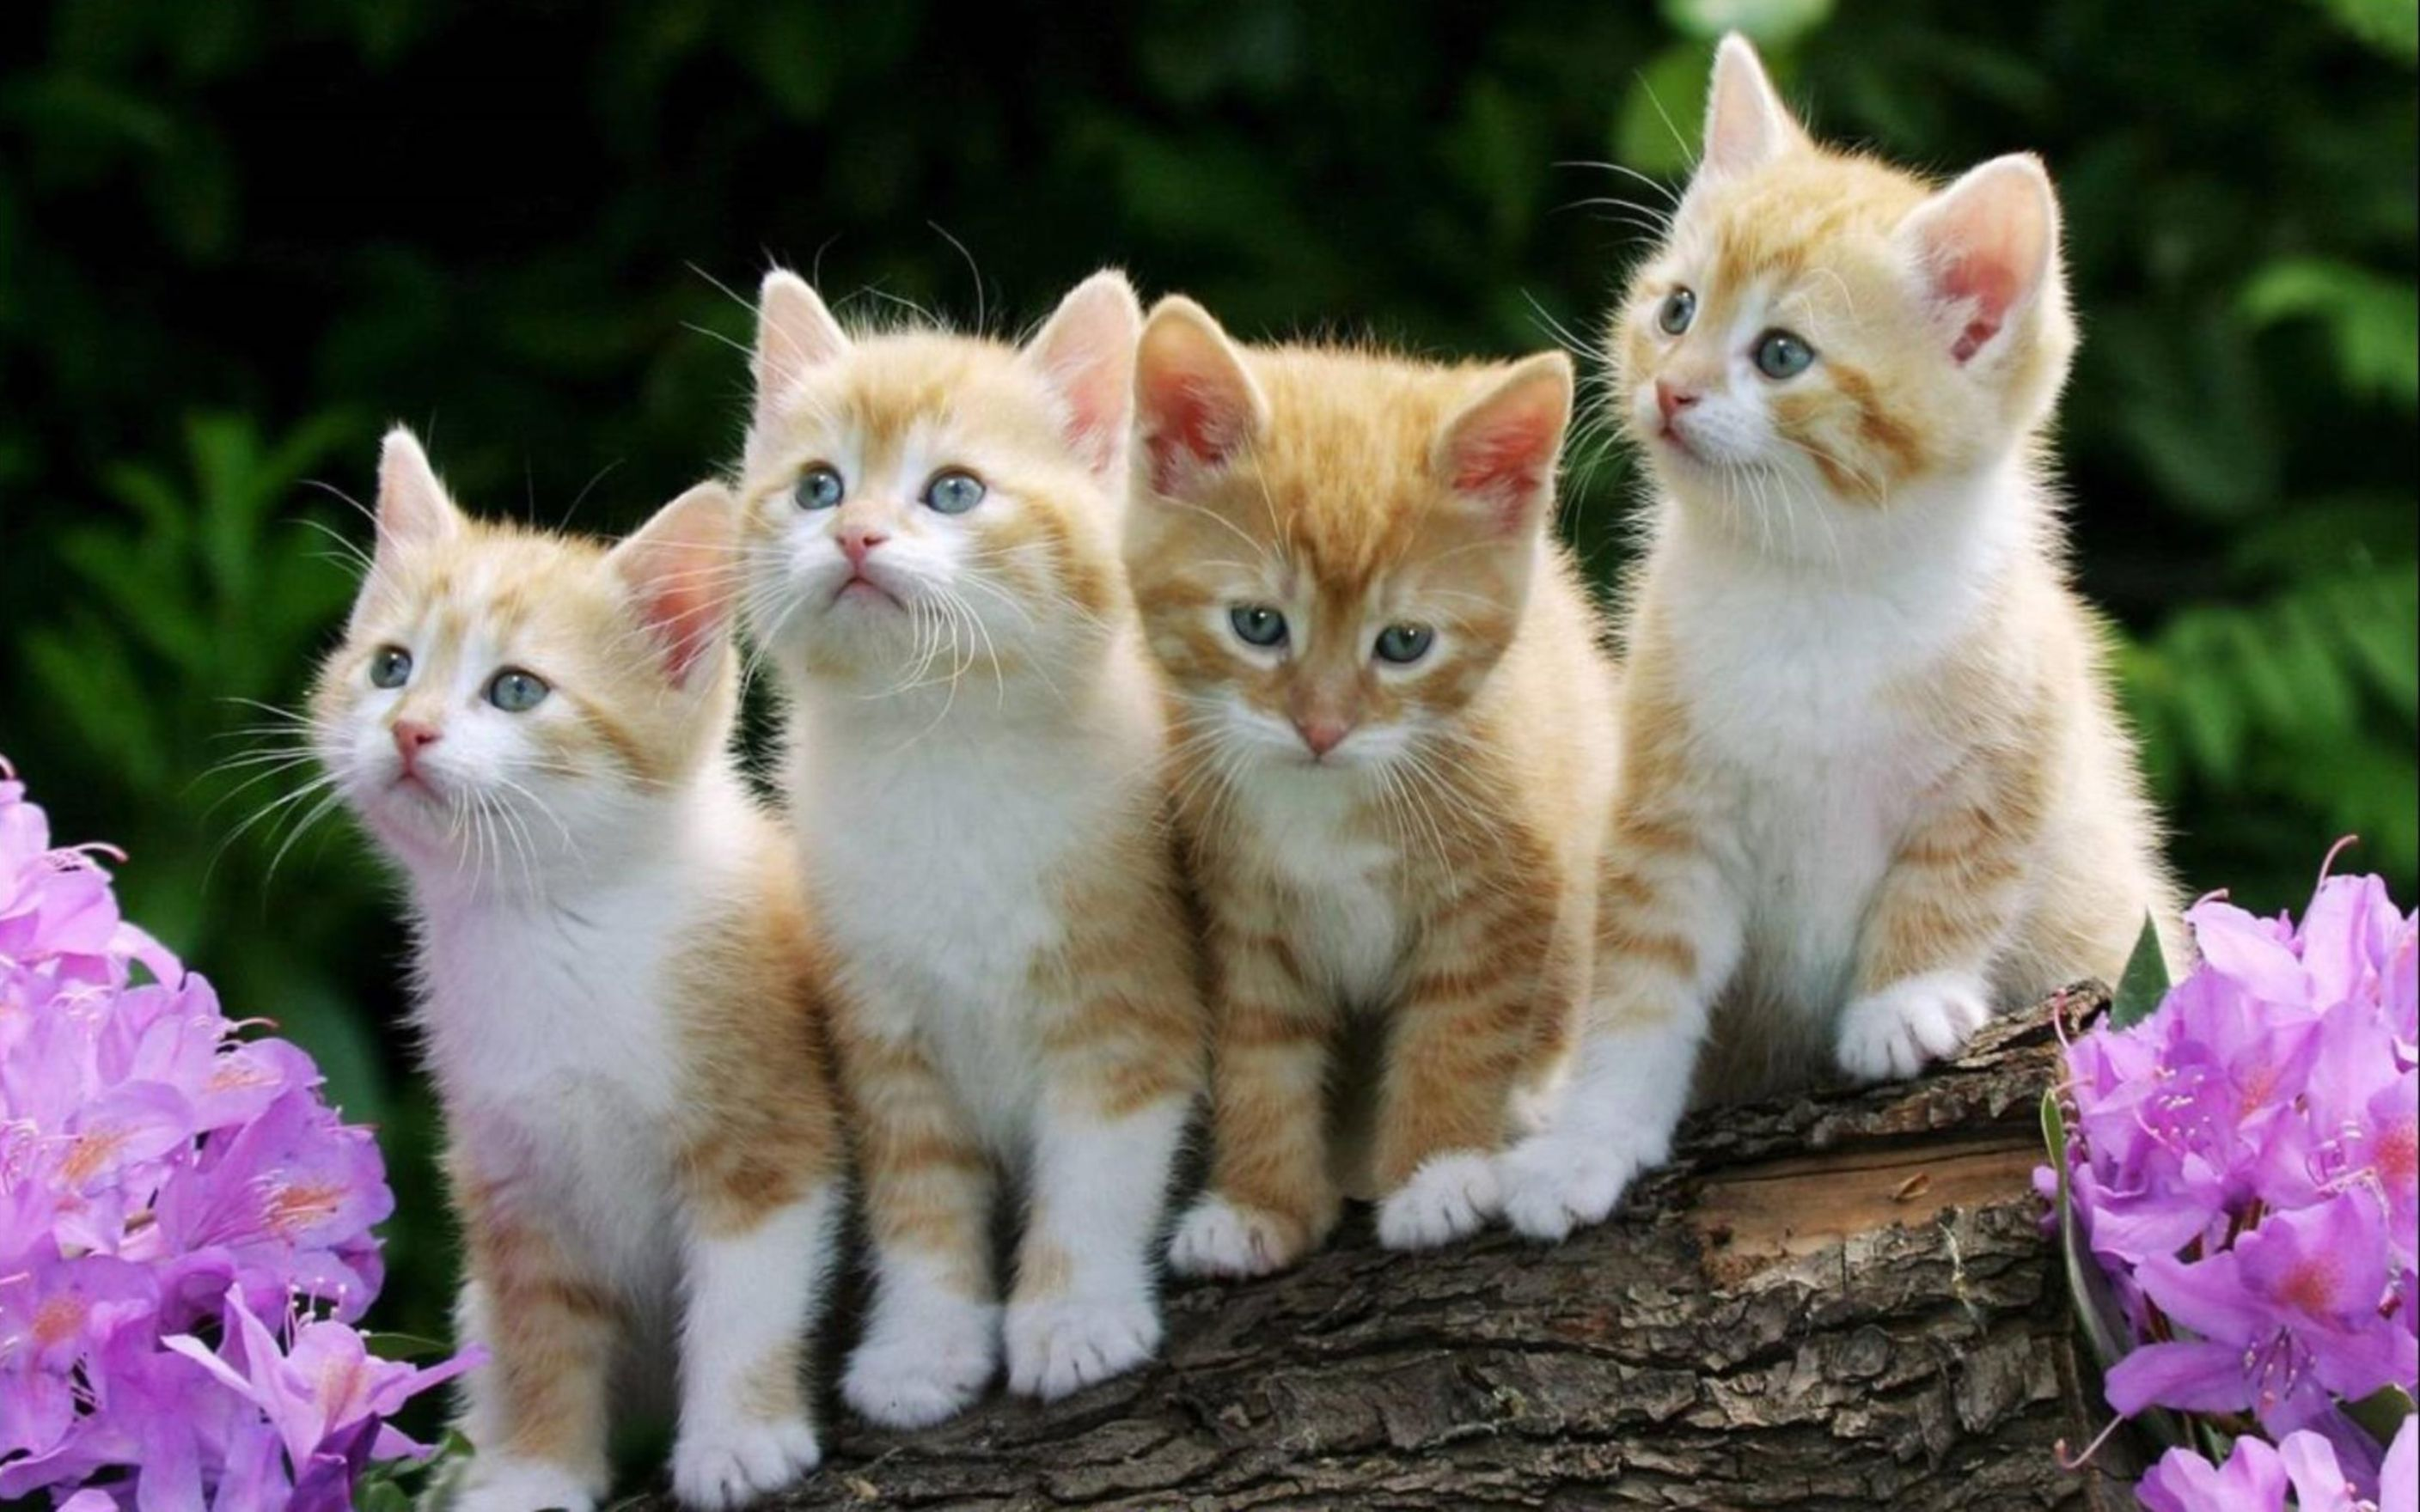 four cute cats on a branch wallpaper: desktop hd wallpaper